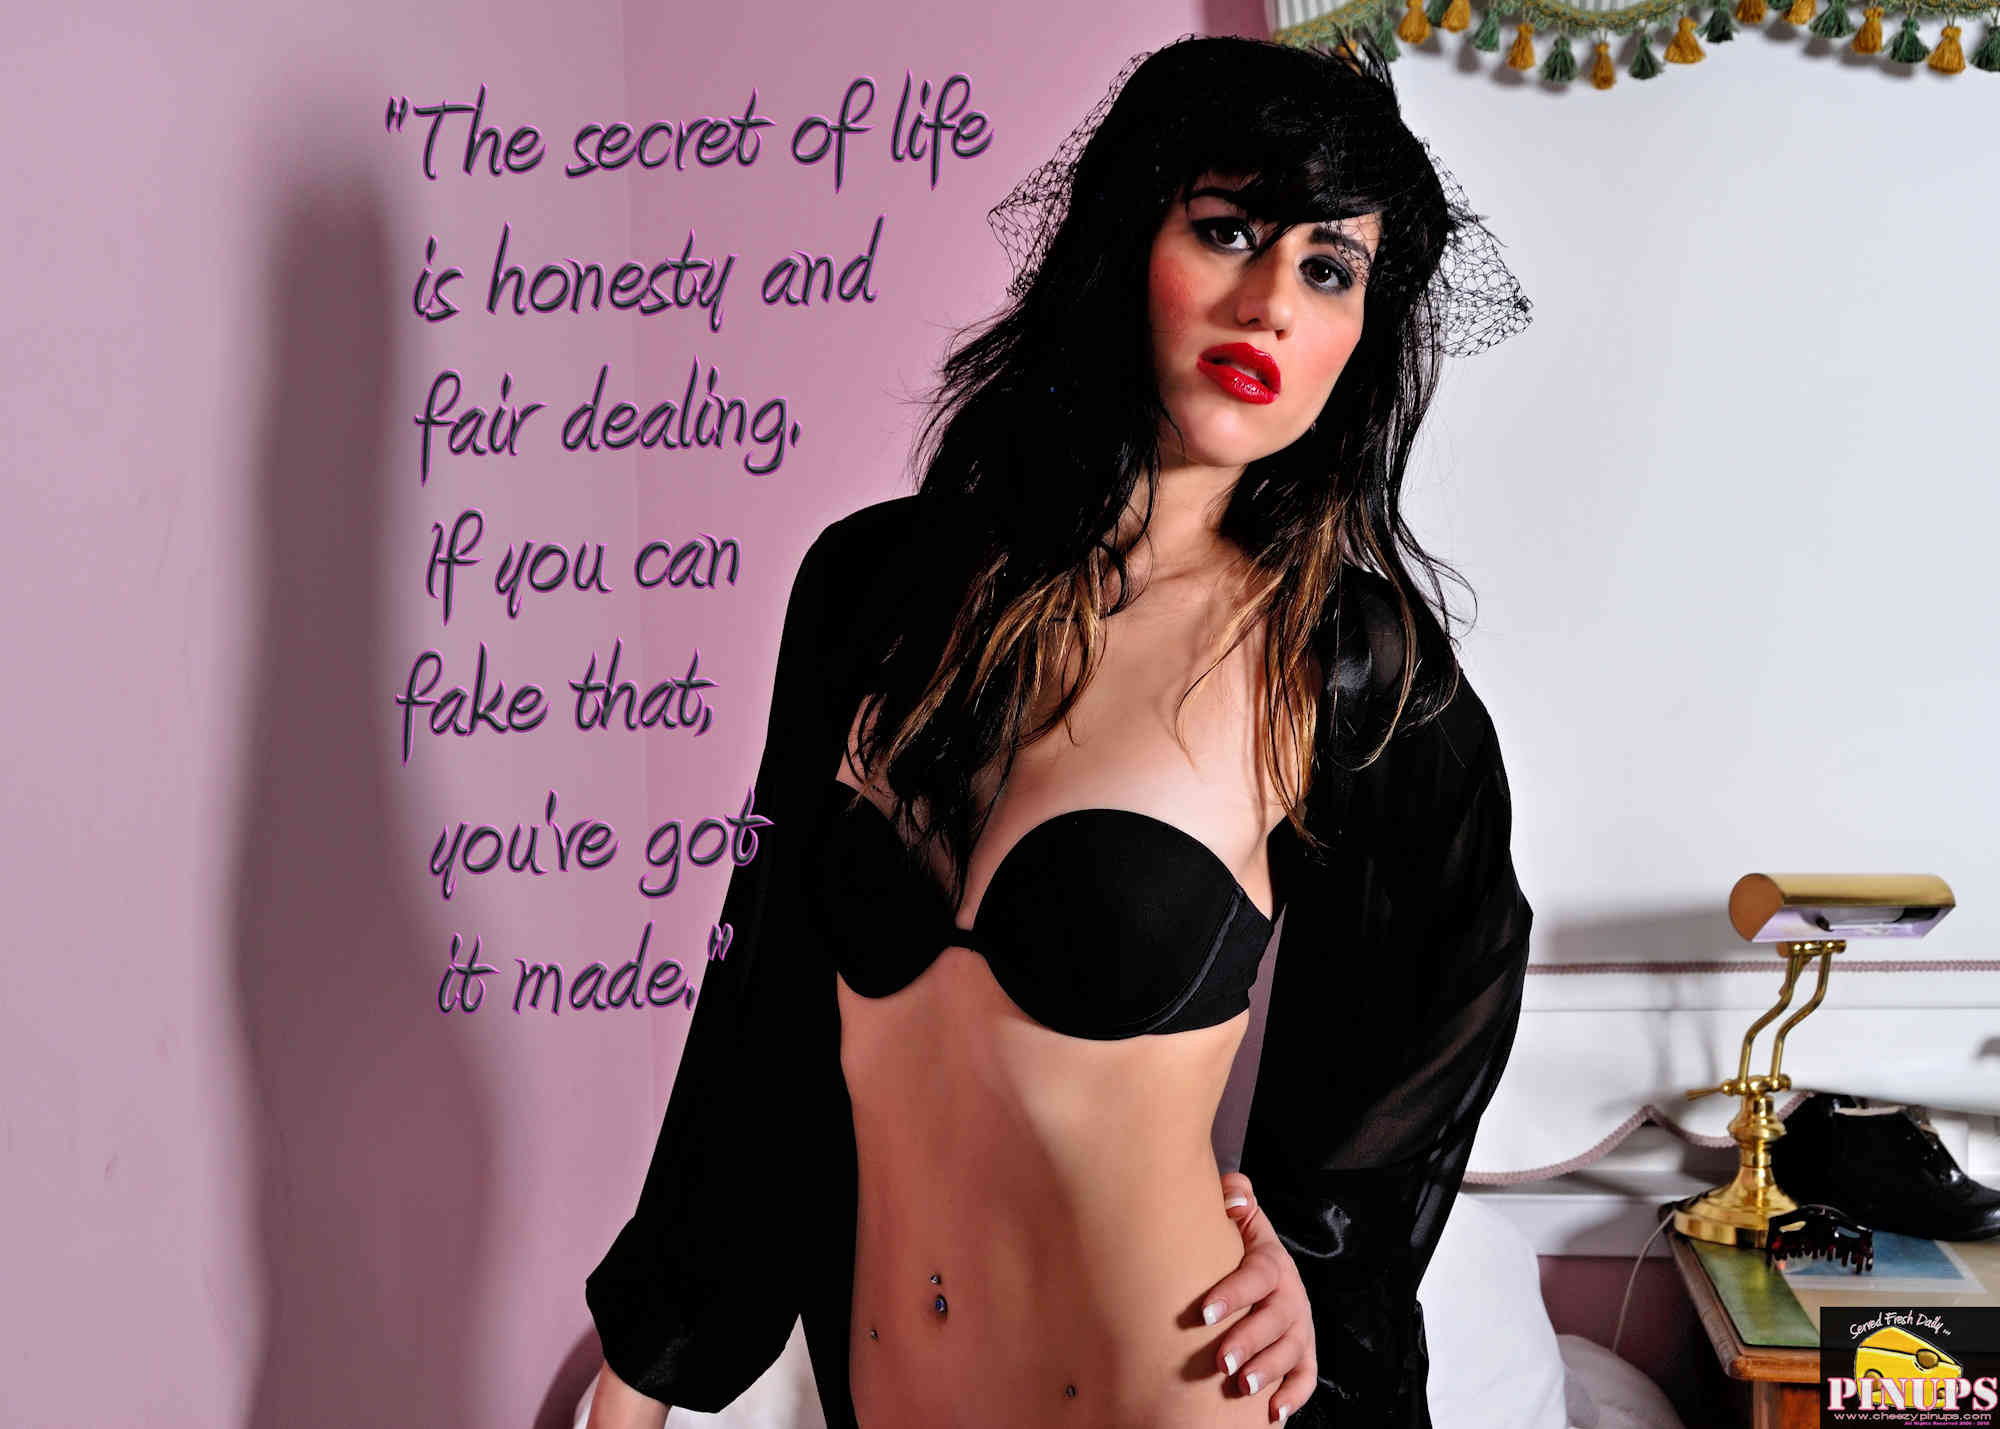 """Cheezy Pinup - October 2, 2018   """"The secret of life is honesty and fair dealing. If you can fake that, you've got it made."""" - Groucho Marx Model: Maria"""